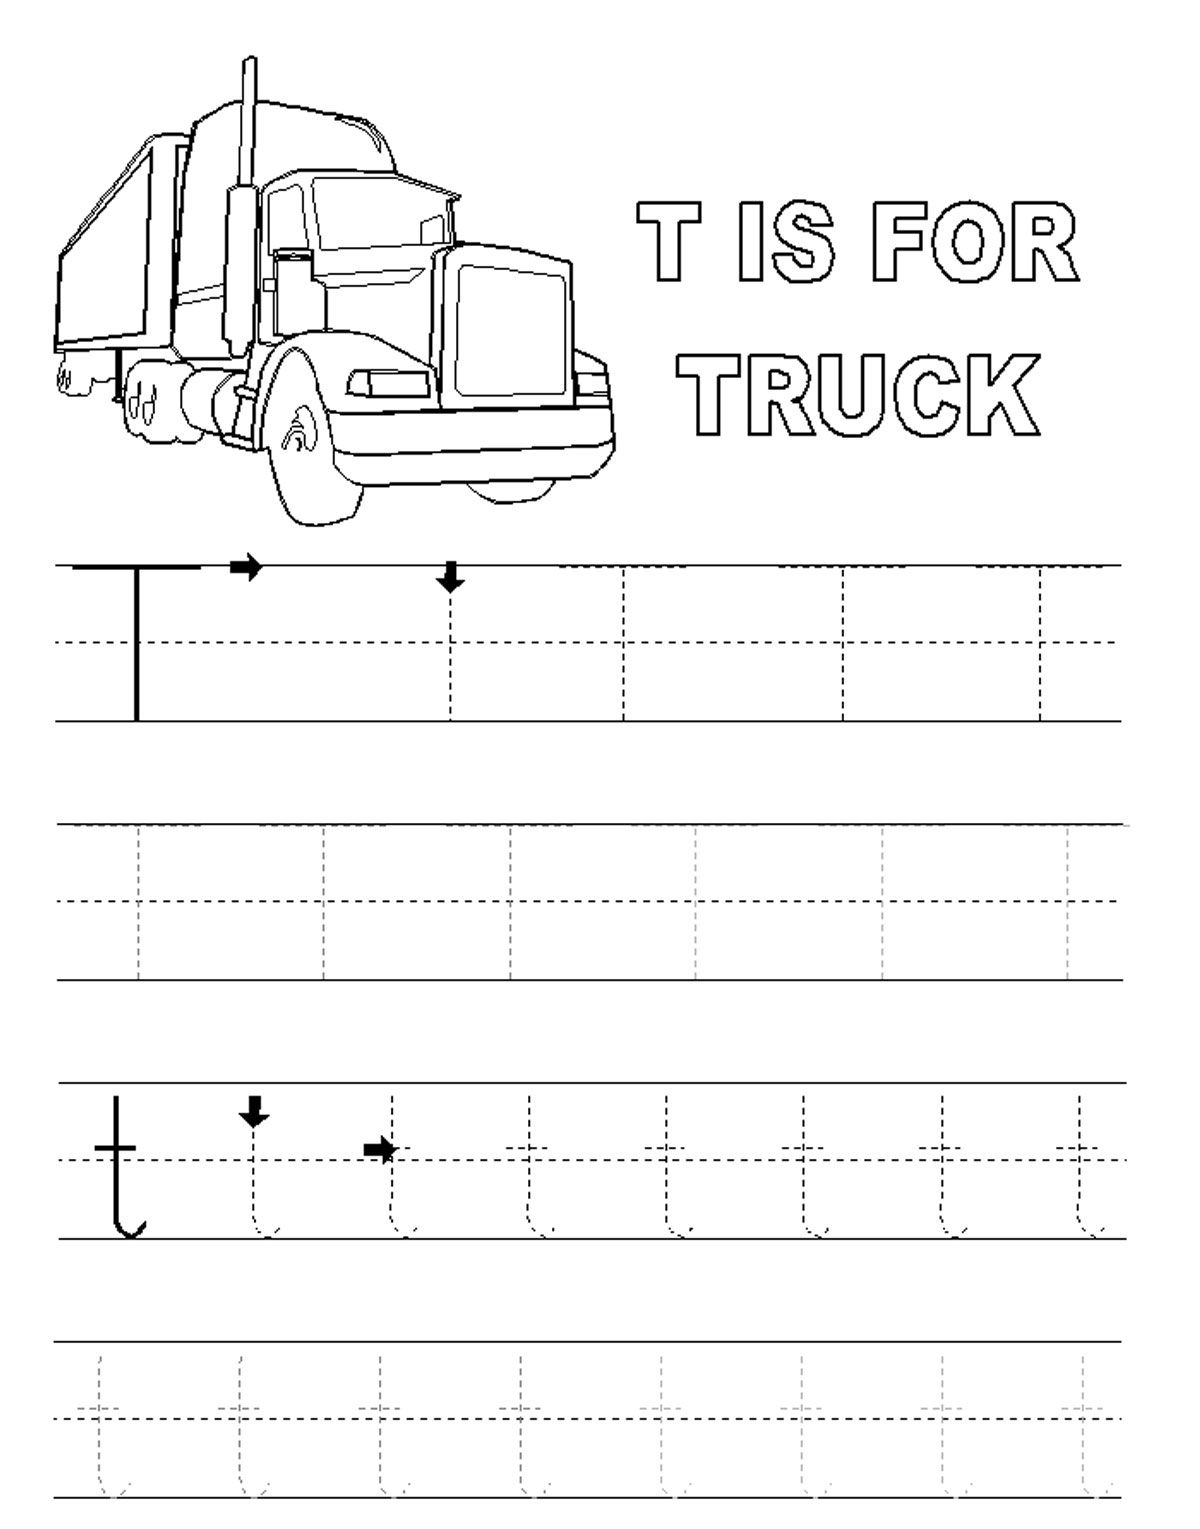 Alphabet Tracer Pages T Truck Http Www Kidscp Com Alphabet Tracer Pages T Truck Pinterest Letter T Worksheets Learning Worksheets Letter Worksheets [ 1529 x 1200 Pixel ]